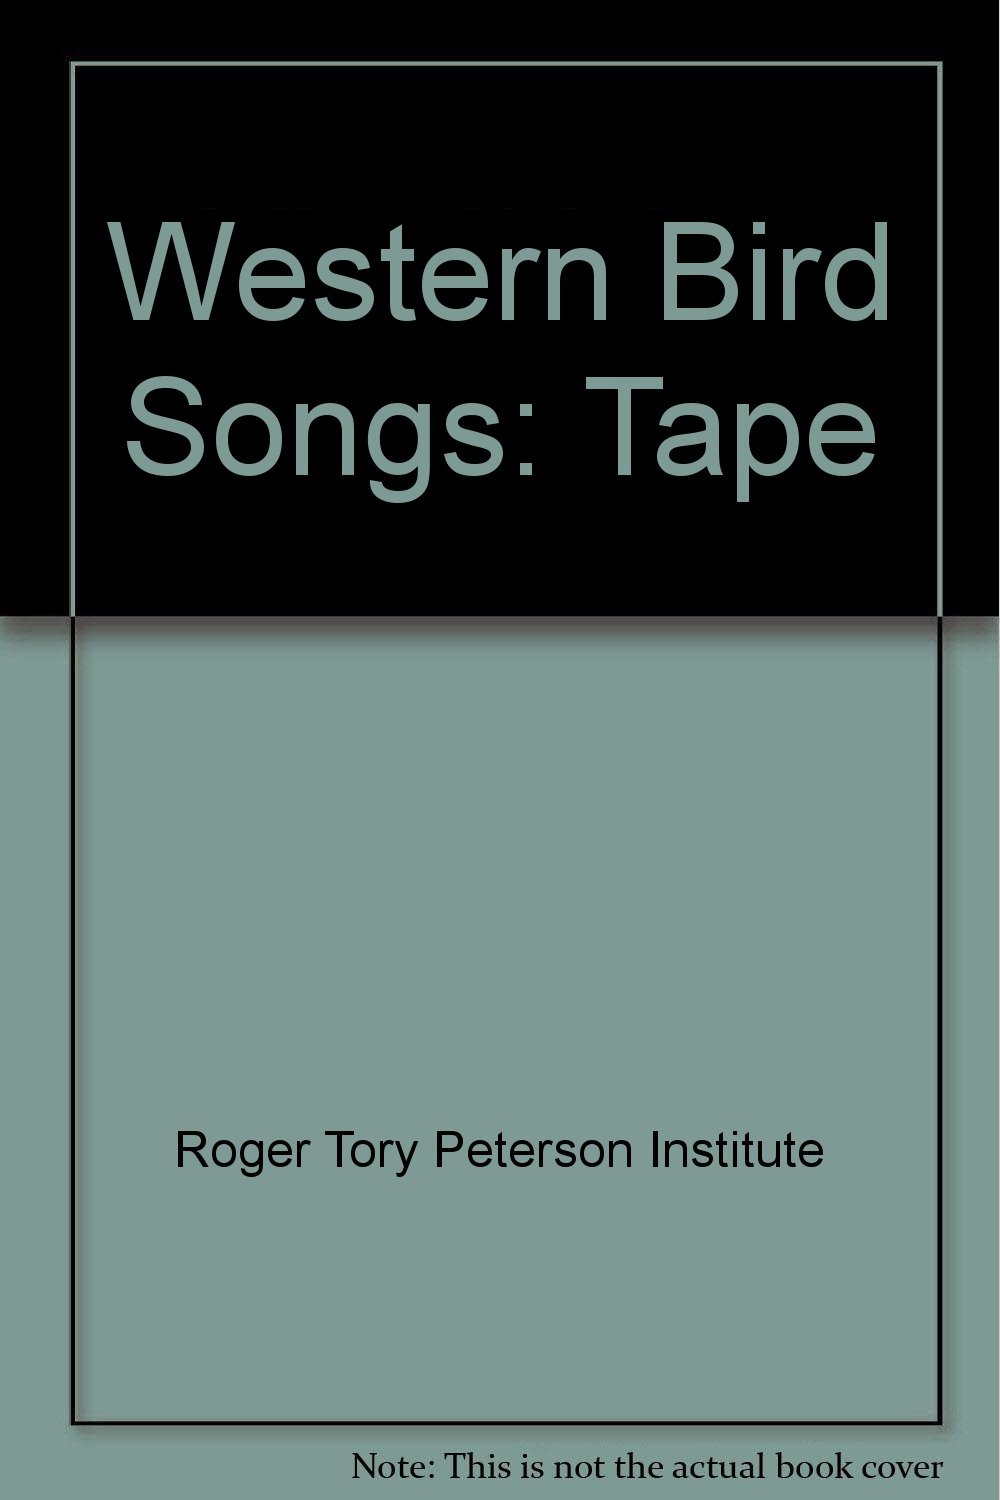 Field Guide to Western Bird Songs, Roger Tory Peterson Institute